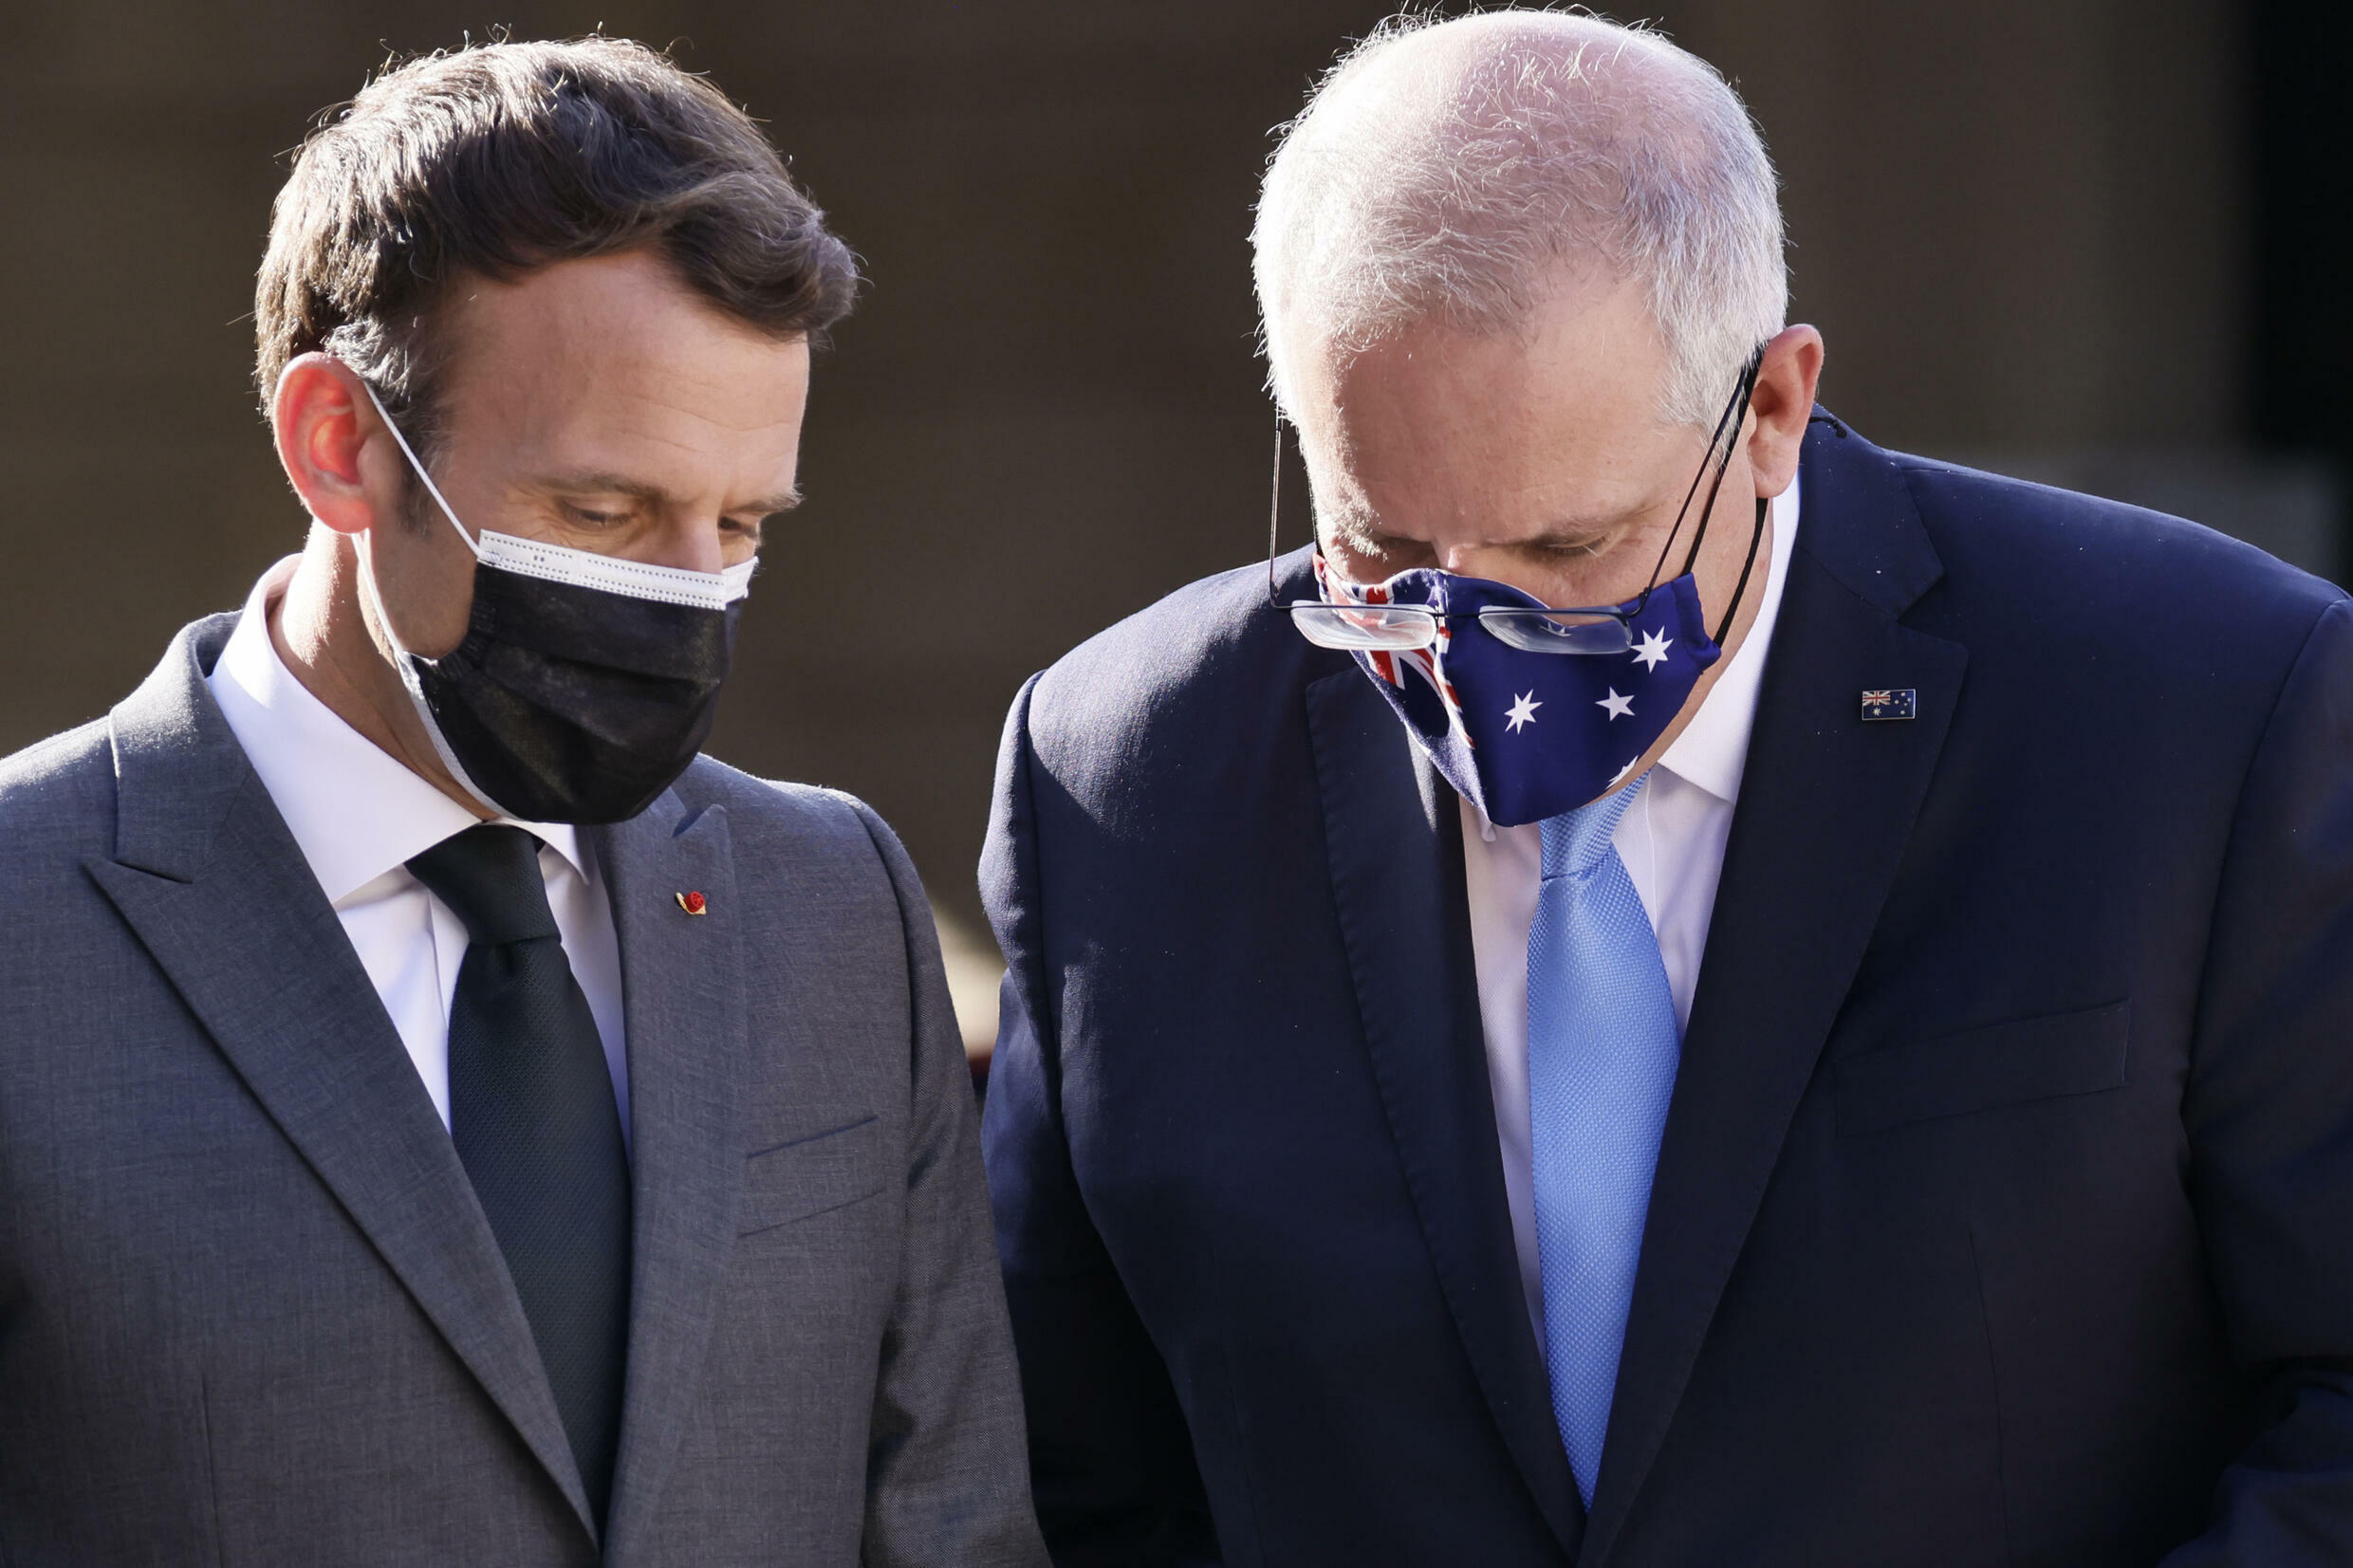 Macron has not scheduled a similar call with Australian Prime Minister Scott Morrison, an Elysee official said